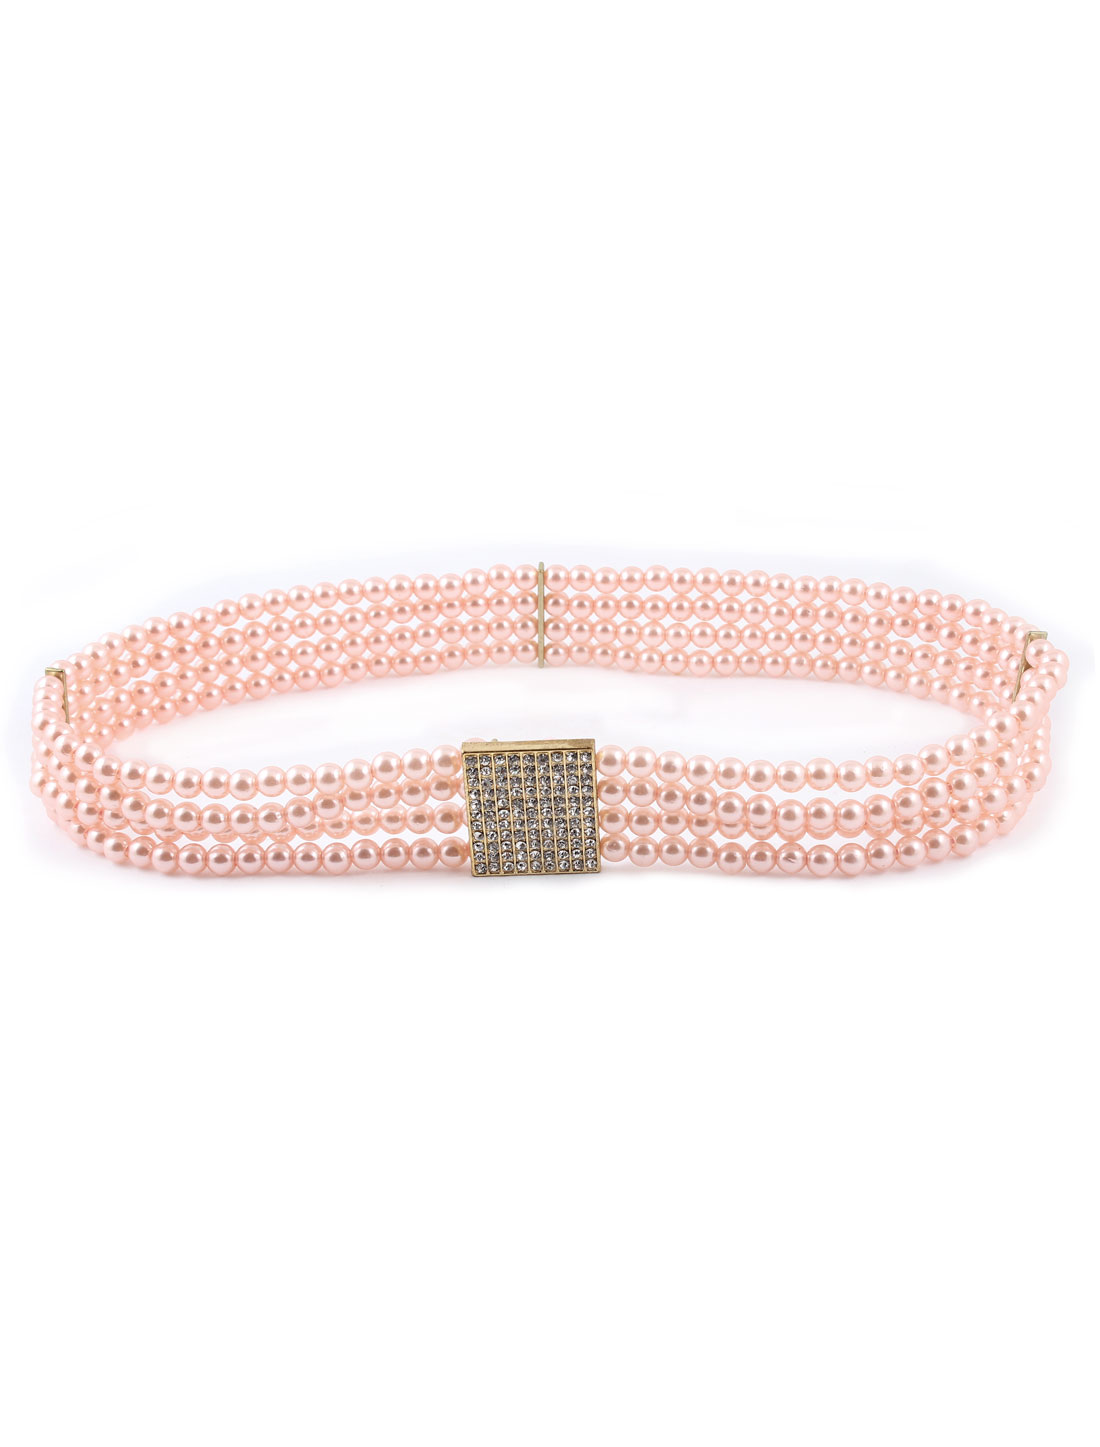 Pink Faux Pearl Elastic Interlocking Buckle 3.5cm Wide Cinch Waist Belt for Lady